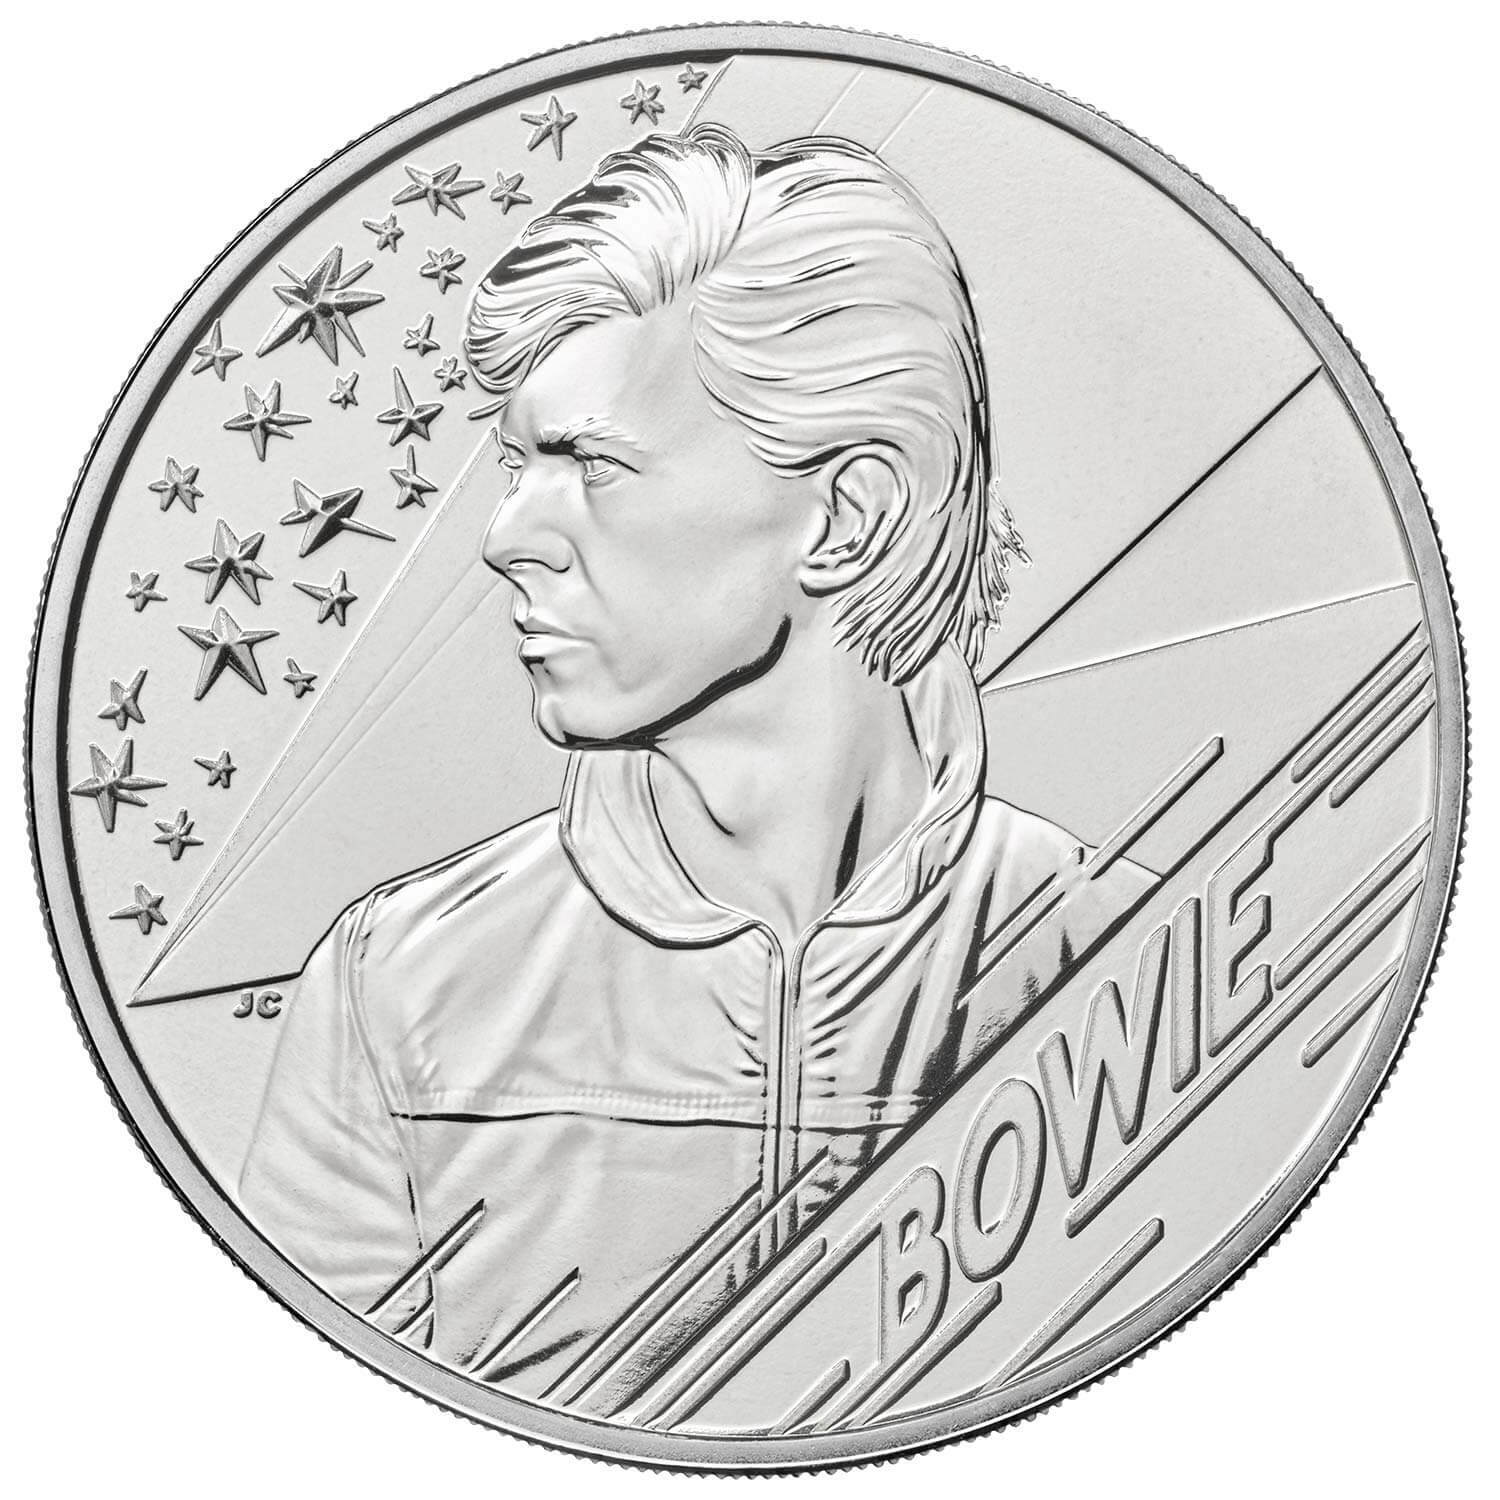 2020 £5 David Bowie Brilliant UNC Coin Edition 4